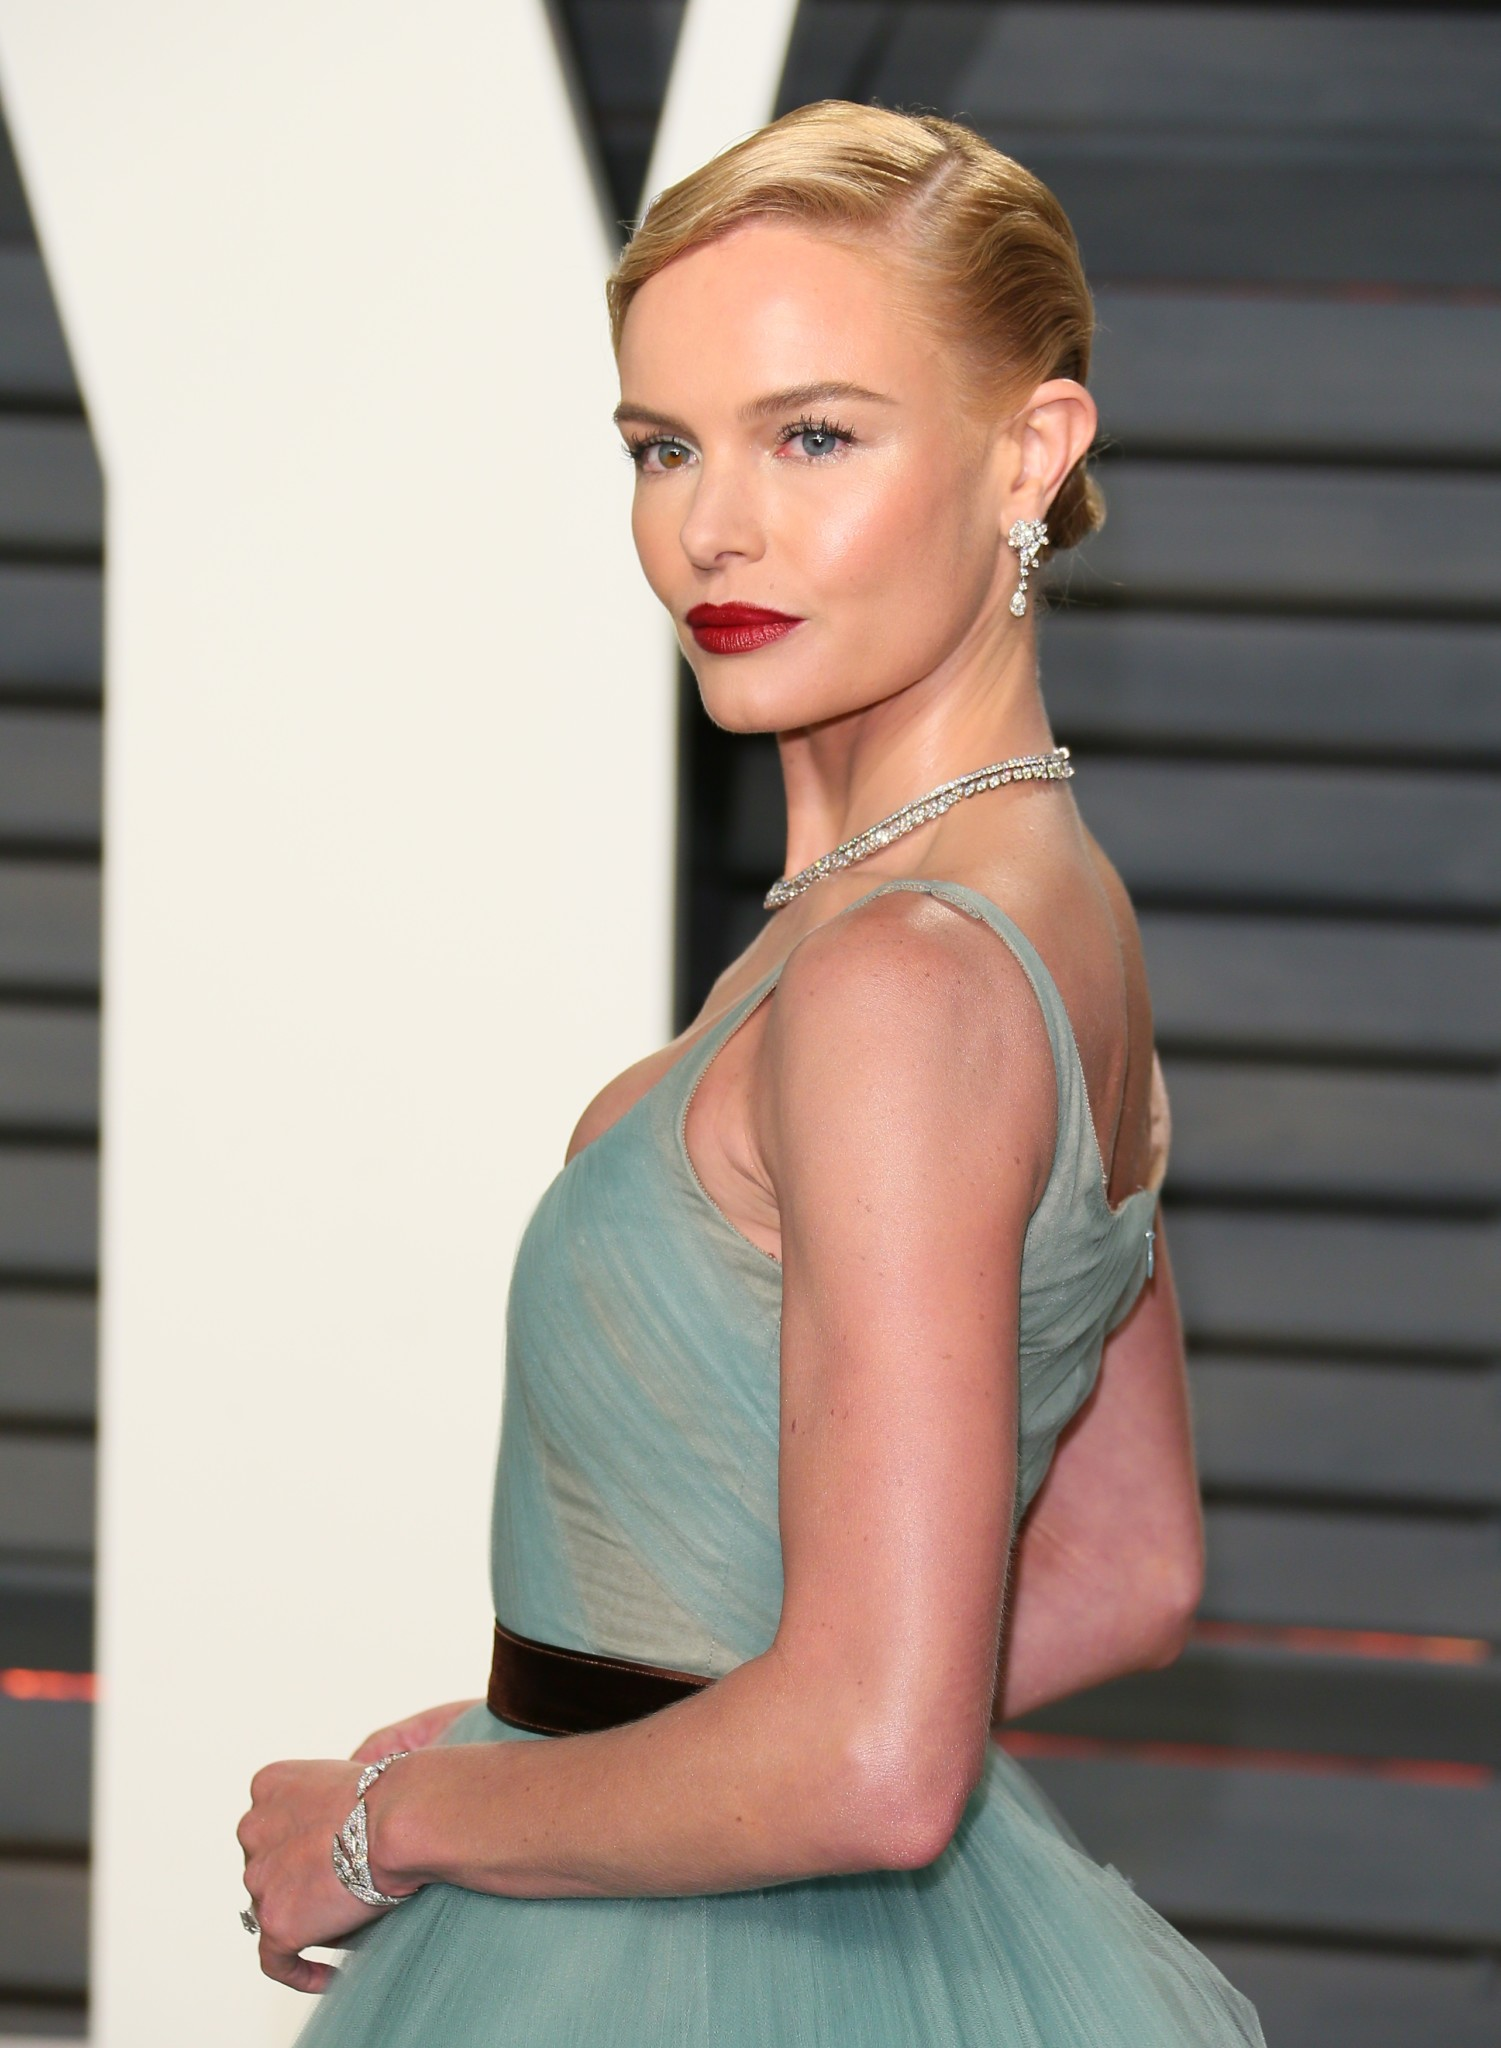 US actress Kate Bosworth arrives to the Vanity Fair Party following the 88th Academy Awards at The Wallis Annenberg Center for the Performing Arts in Beverly Hills, California, on February 26, 2017. / AFP / JEAN-BAPTISTE LACROIX (Photo credit should read JEAN-BAPTISTE LACROIX/AFP/Getty Images)